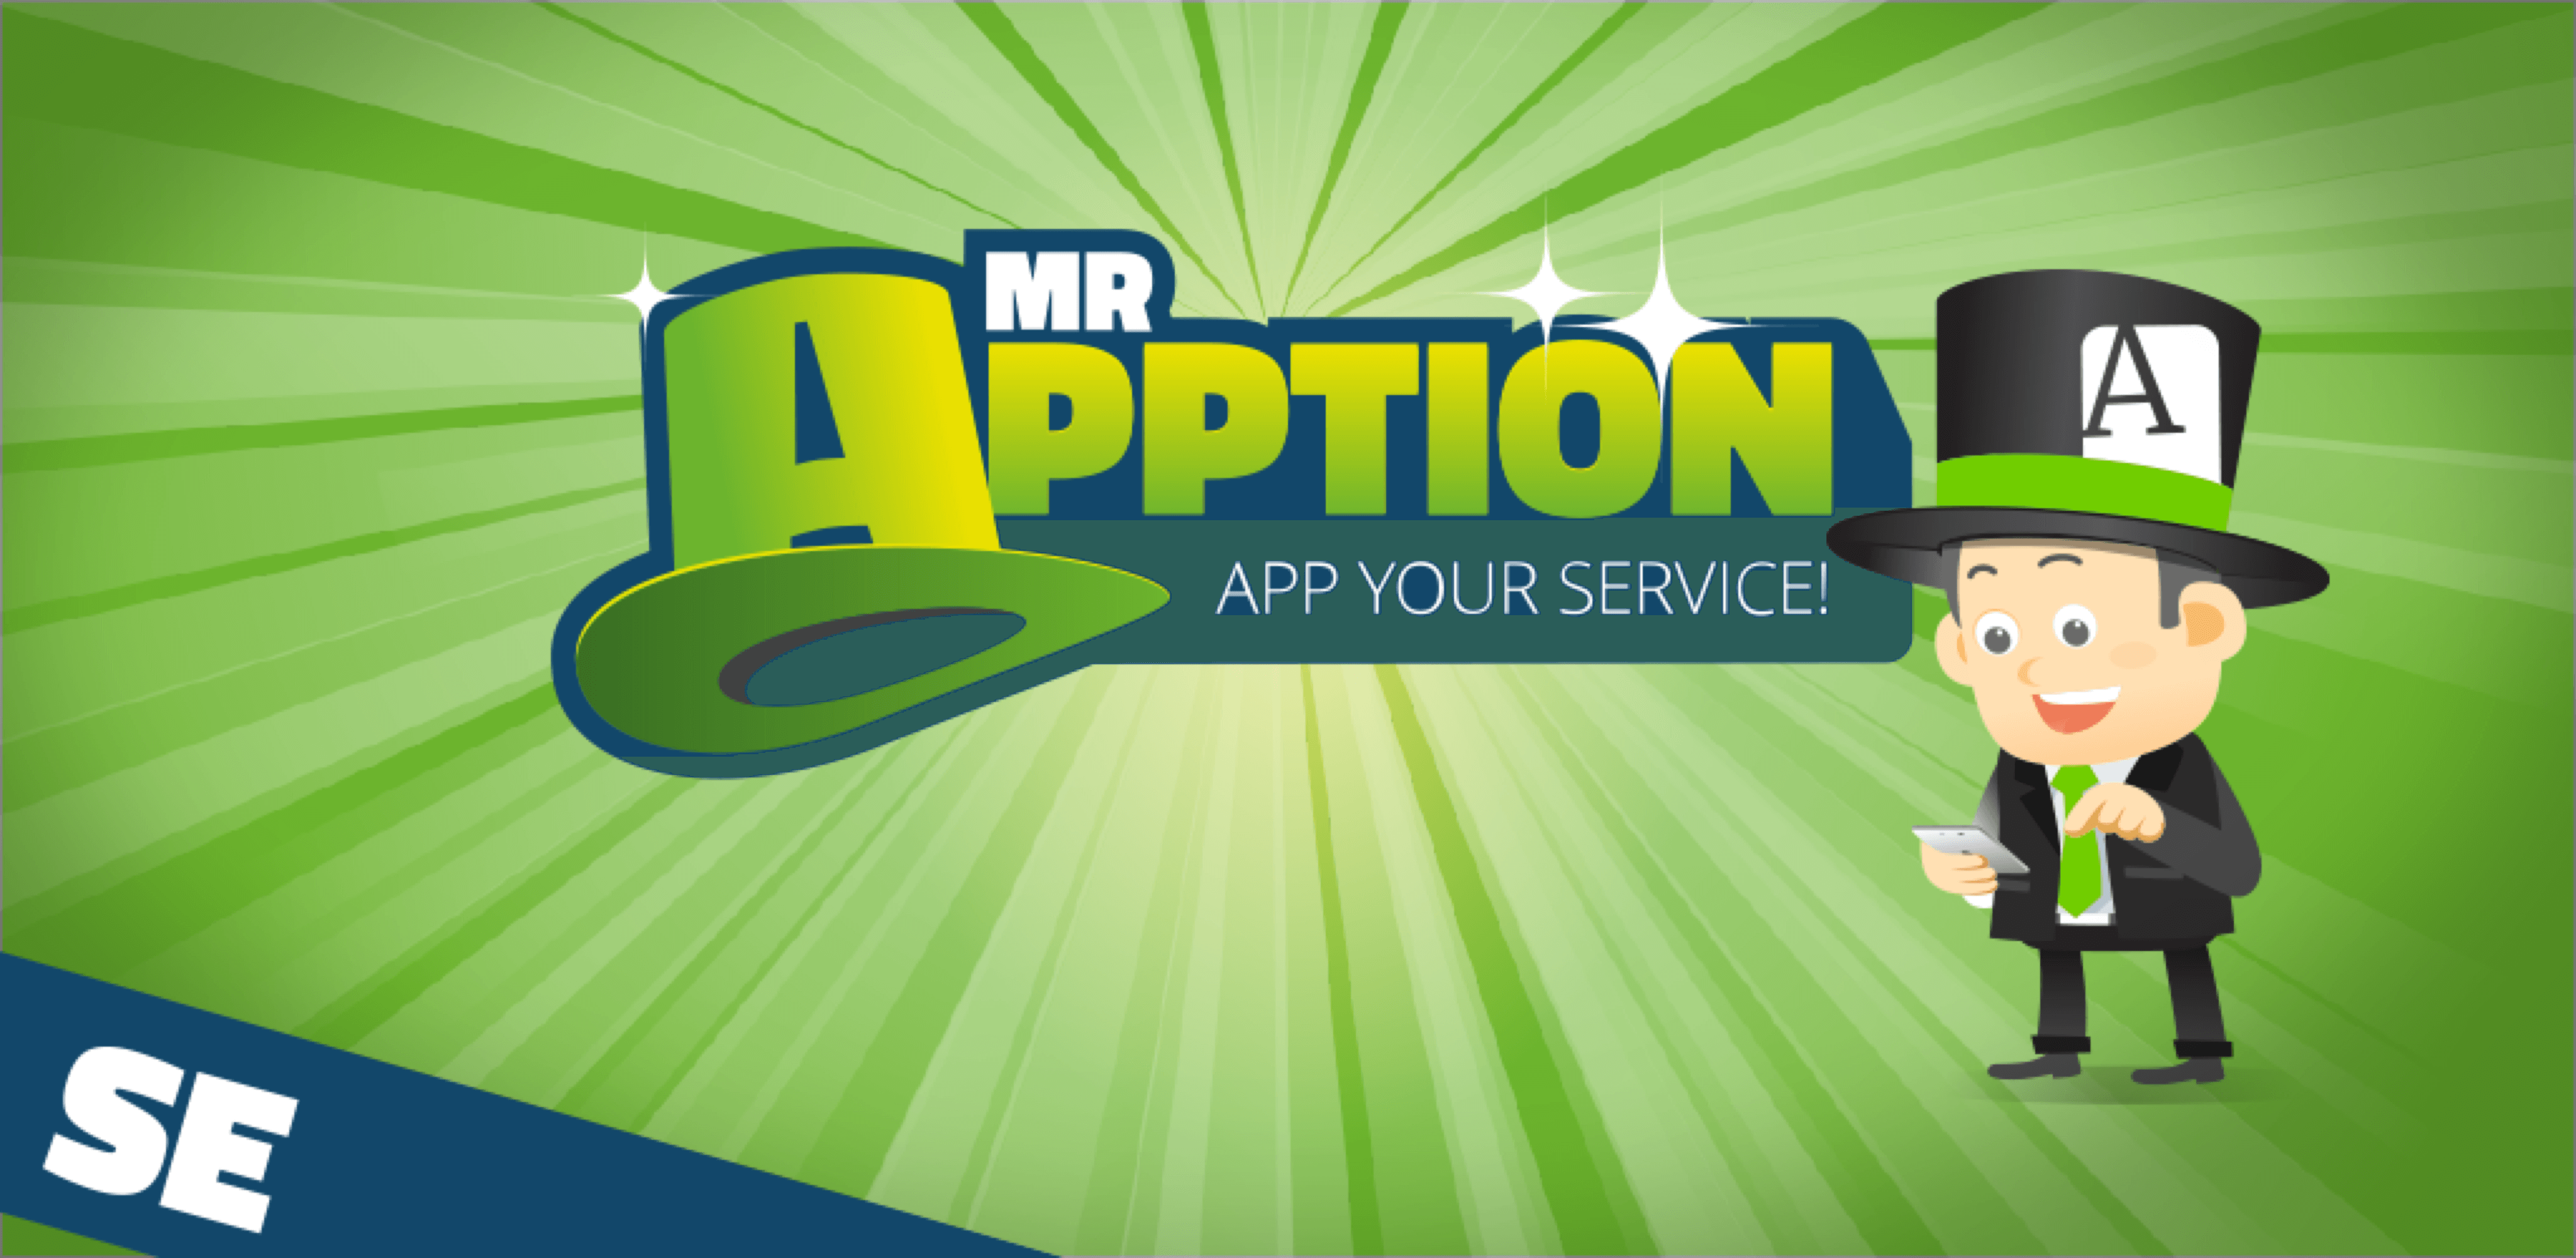 MrApption SE app